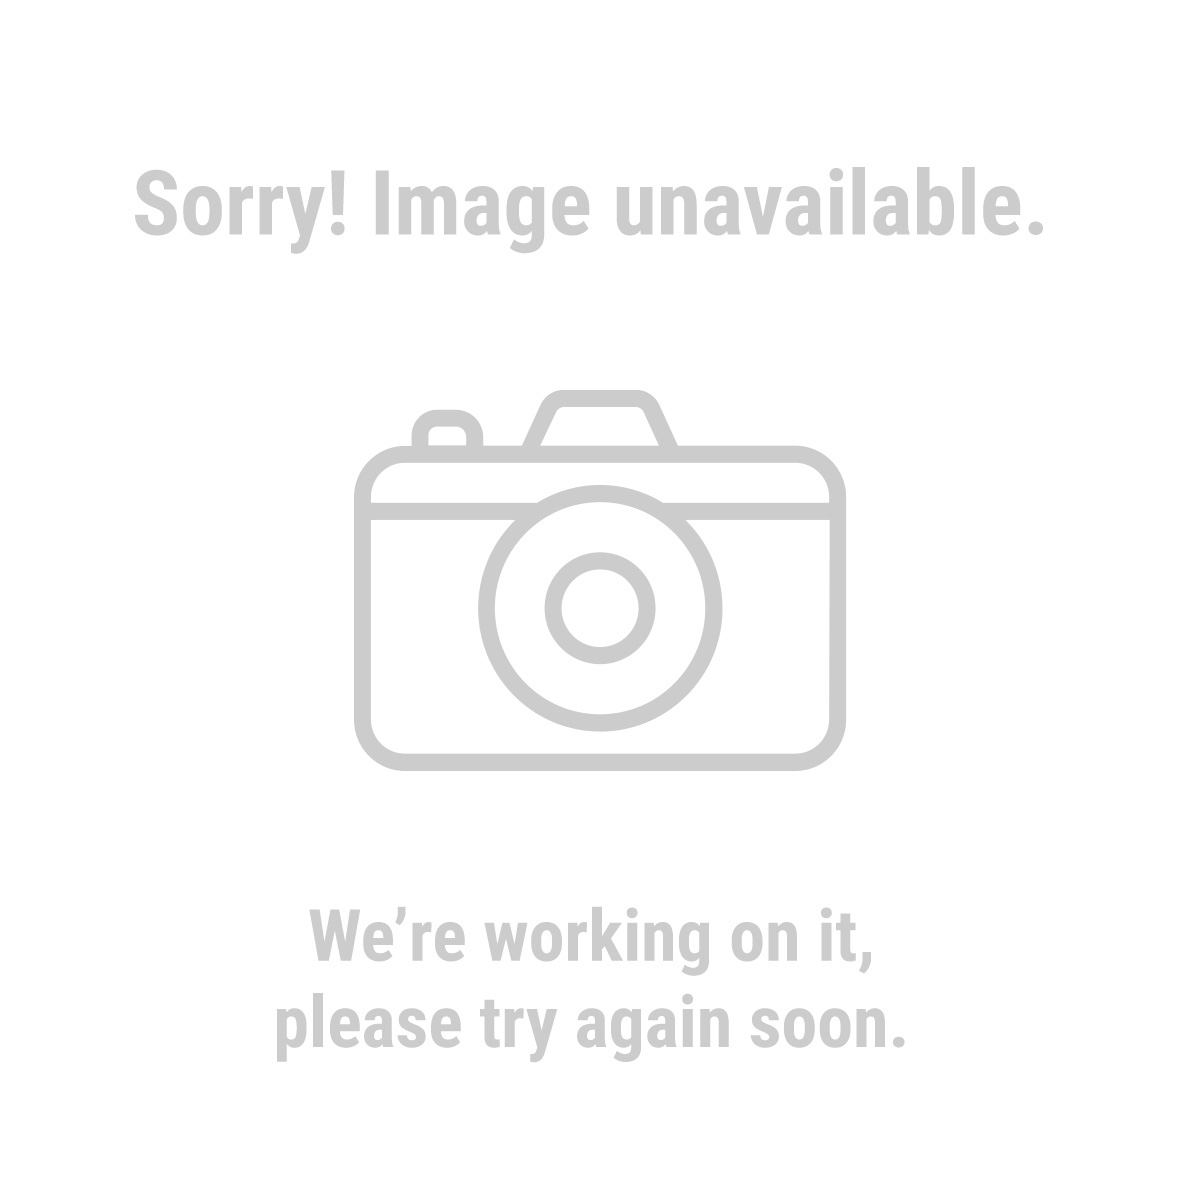 HFT® 69193 28 ft. 10 in. x 39 ft. 4 in. Blue All Purpose/Weather Resistant Tarp